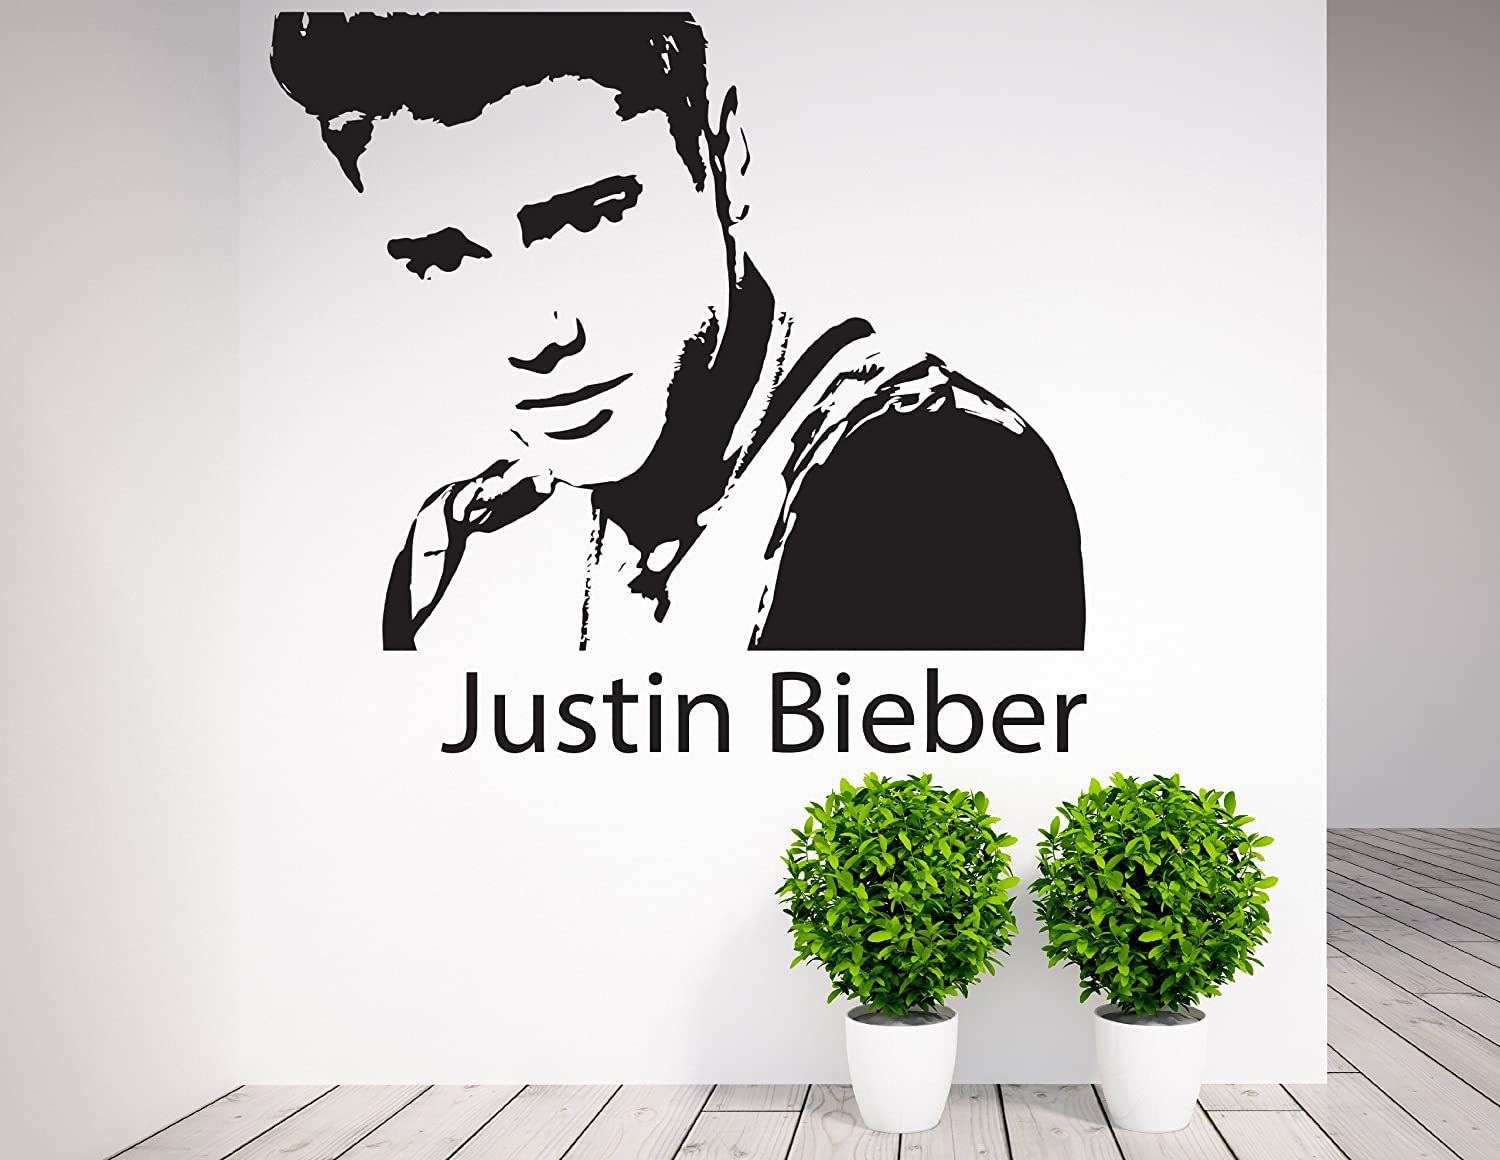 Justin Bieber , Wall Art, Celebrity, Icons, Famous People   Vinyl Sticker  Wall Art Deco Decal   50cm Height,50cm Width   Black Vinyl: Amazon.co.uk:  Car U0026 ... Part 61